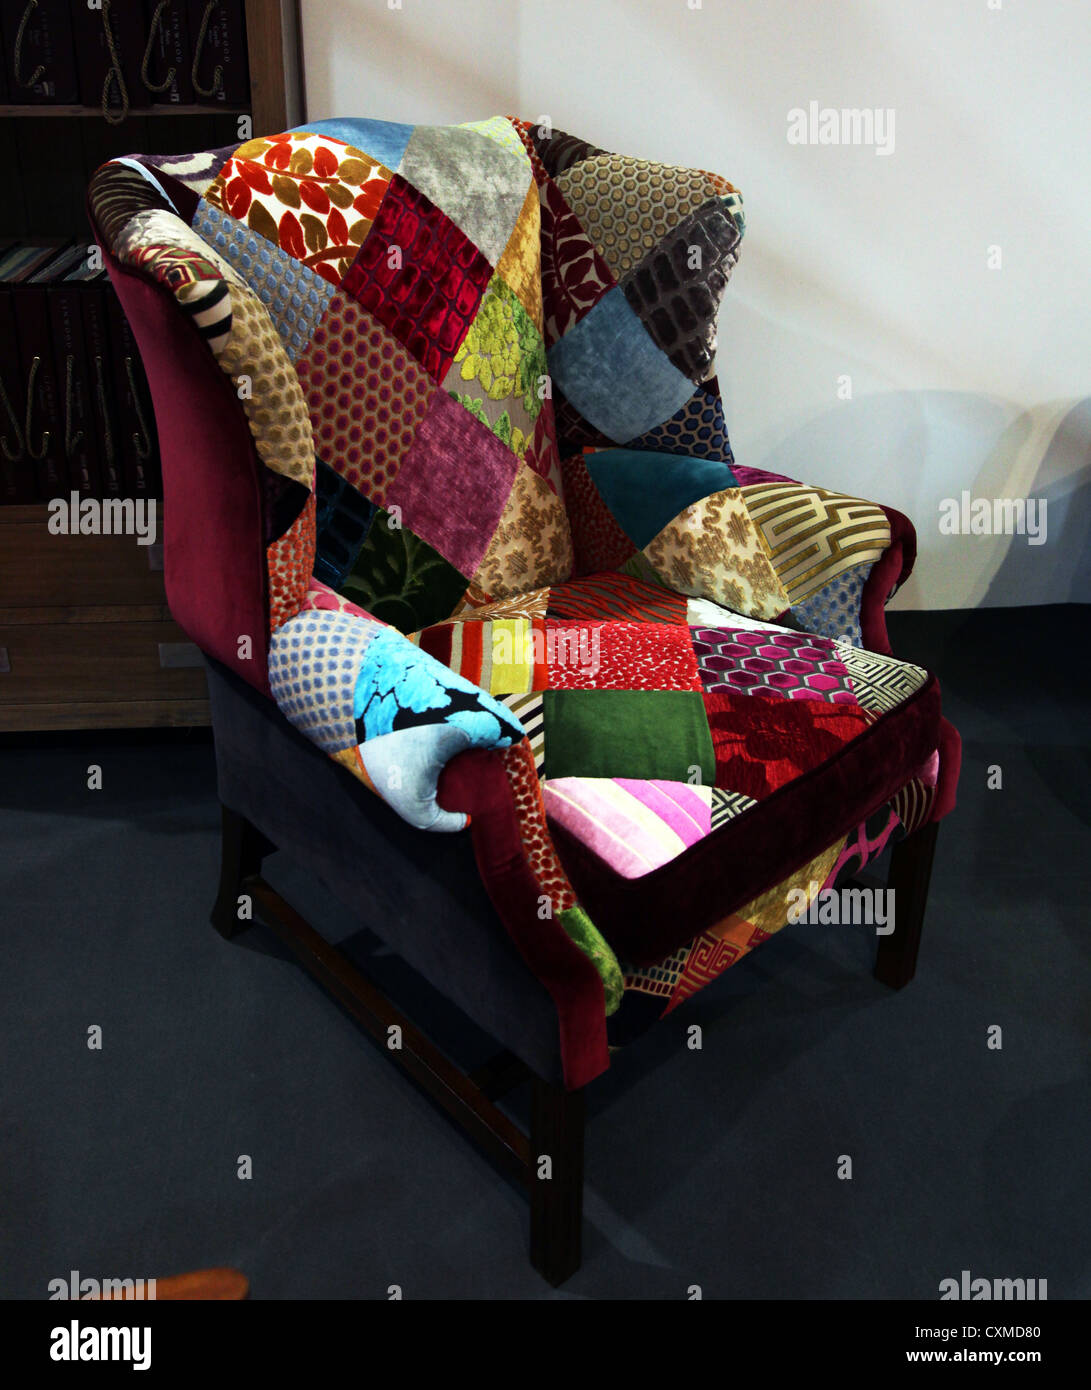 Patchwork upholstered wing chair on sale at the Irish Antique Dealers 47th  Annual Fair, Dublin, Ireland - Patchwork Upholstered Wing Chair On Sale At The Irish Antique